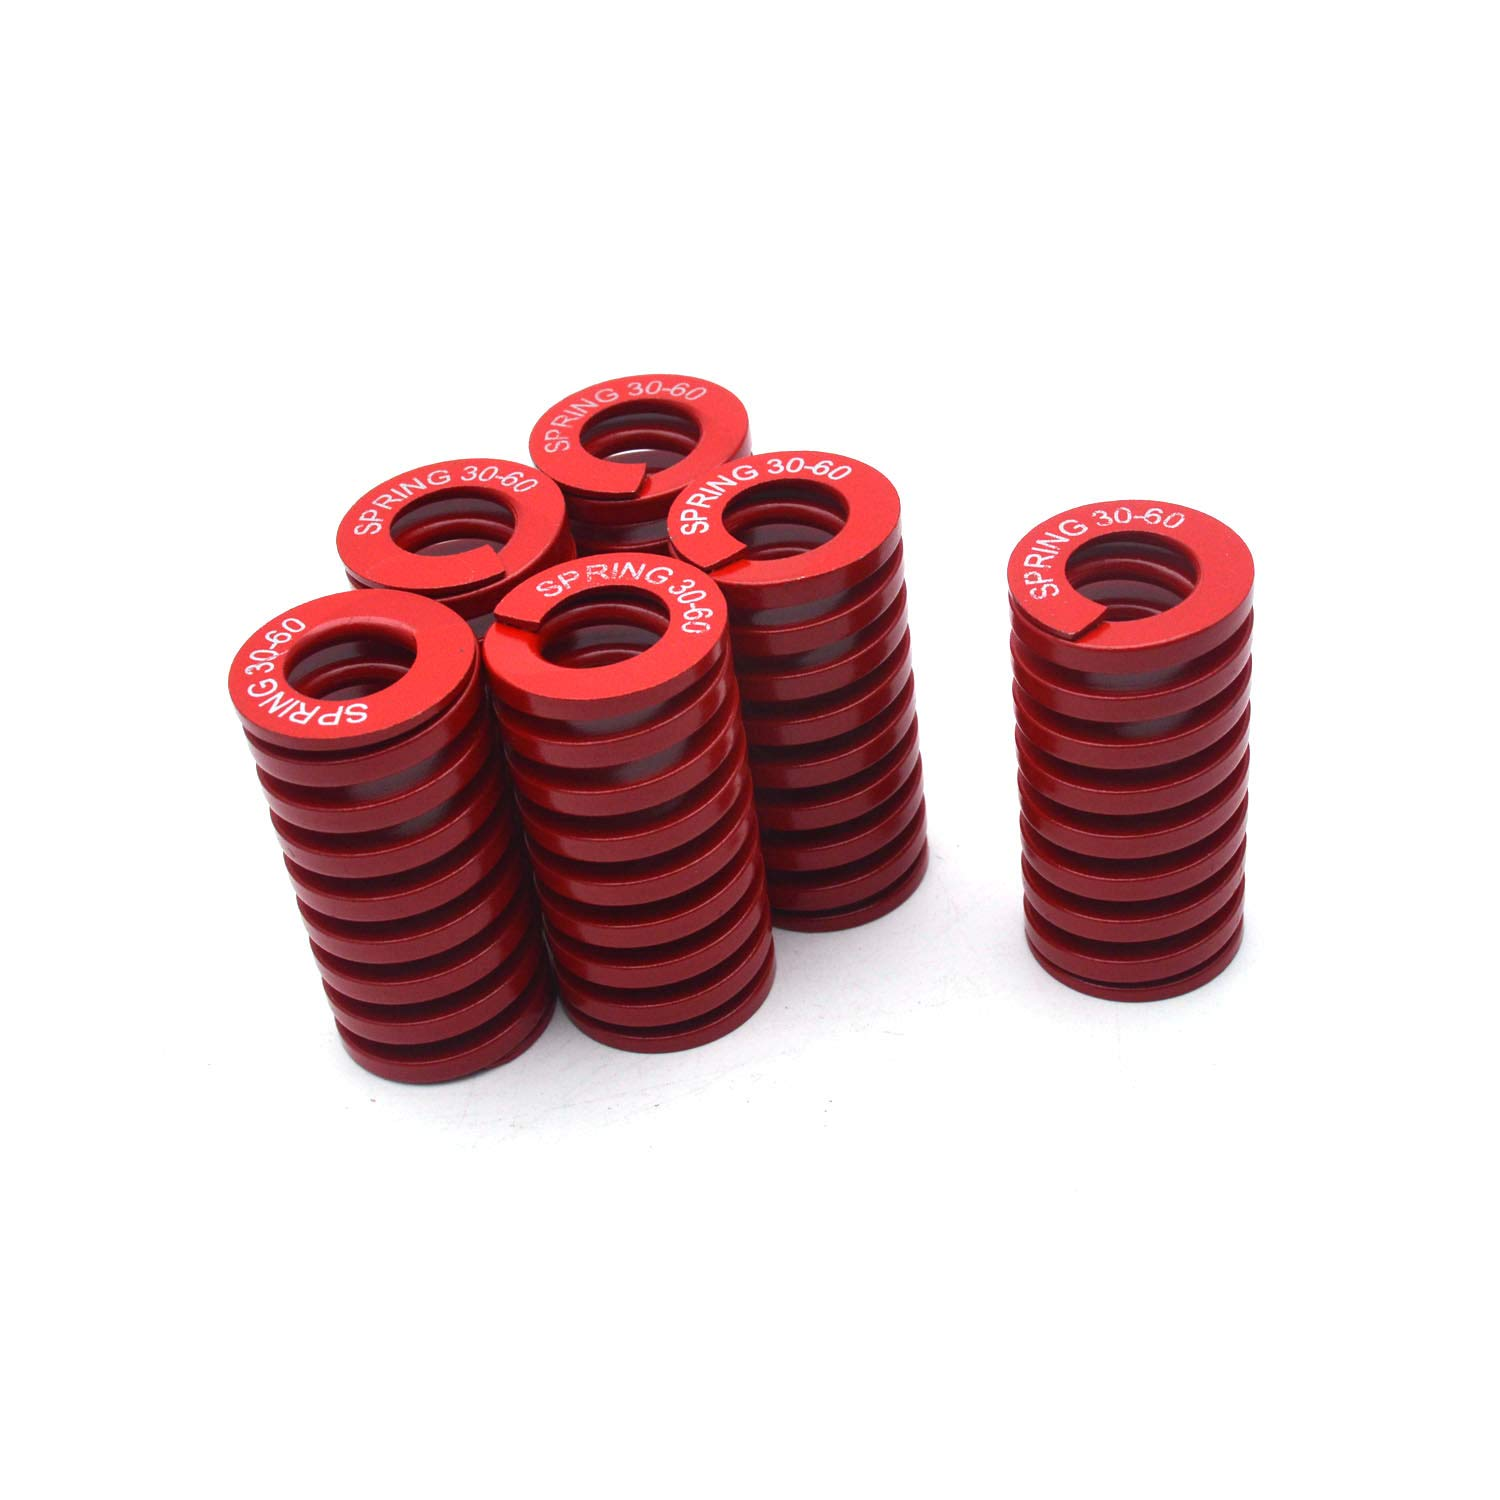 Antrader 6-Pack Red Medium Load Press Compression Mould Die Spring, 1.15-Inch-by-0.63-Inch-by-2.36-Inch